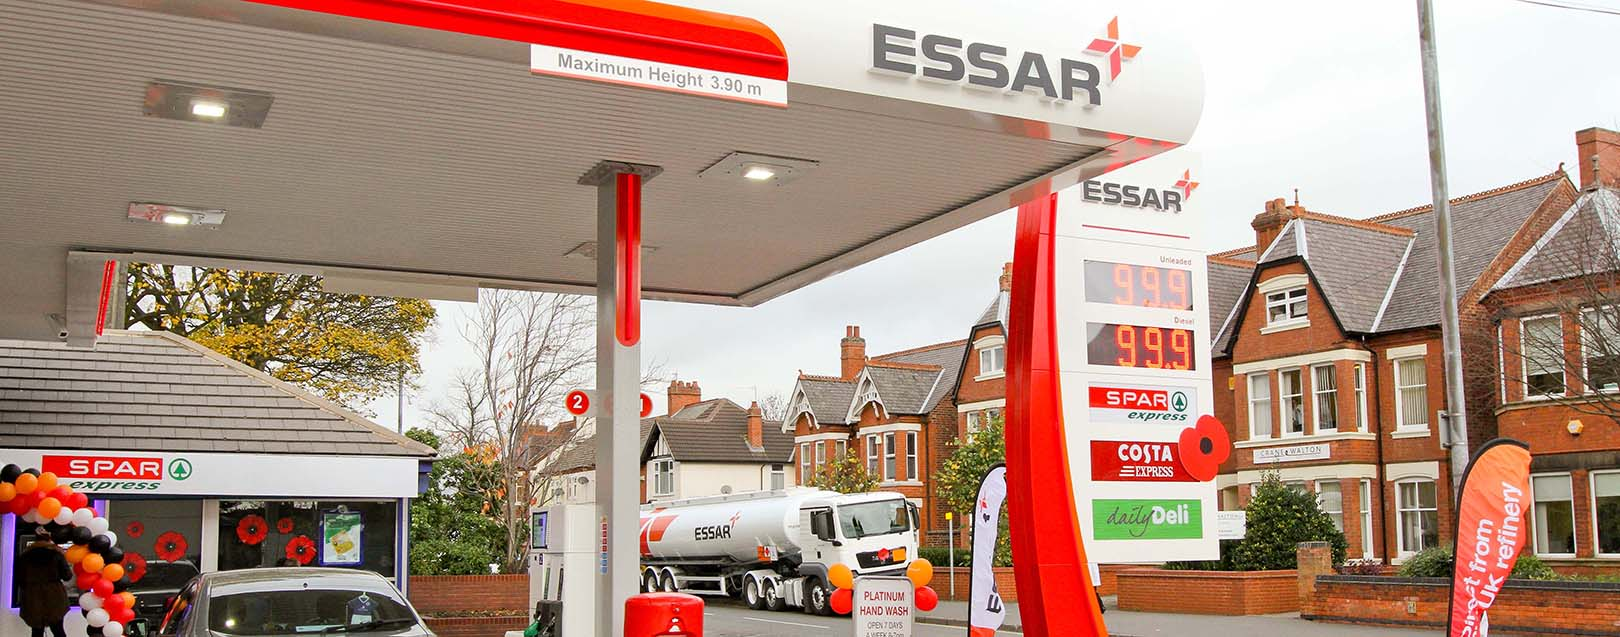 essar oil uk to open 400 retail outlets in 3 yrs. Black Bedroom Furniture Sets. Home Design Ideas